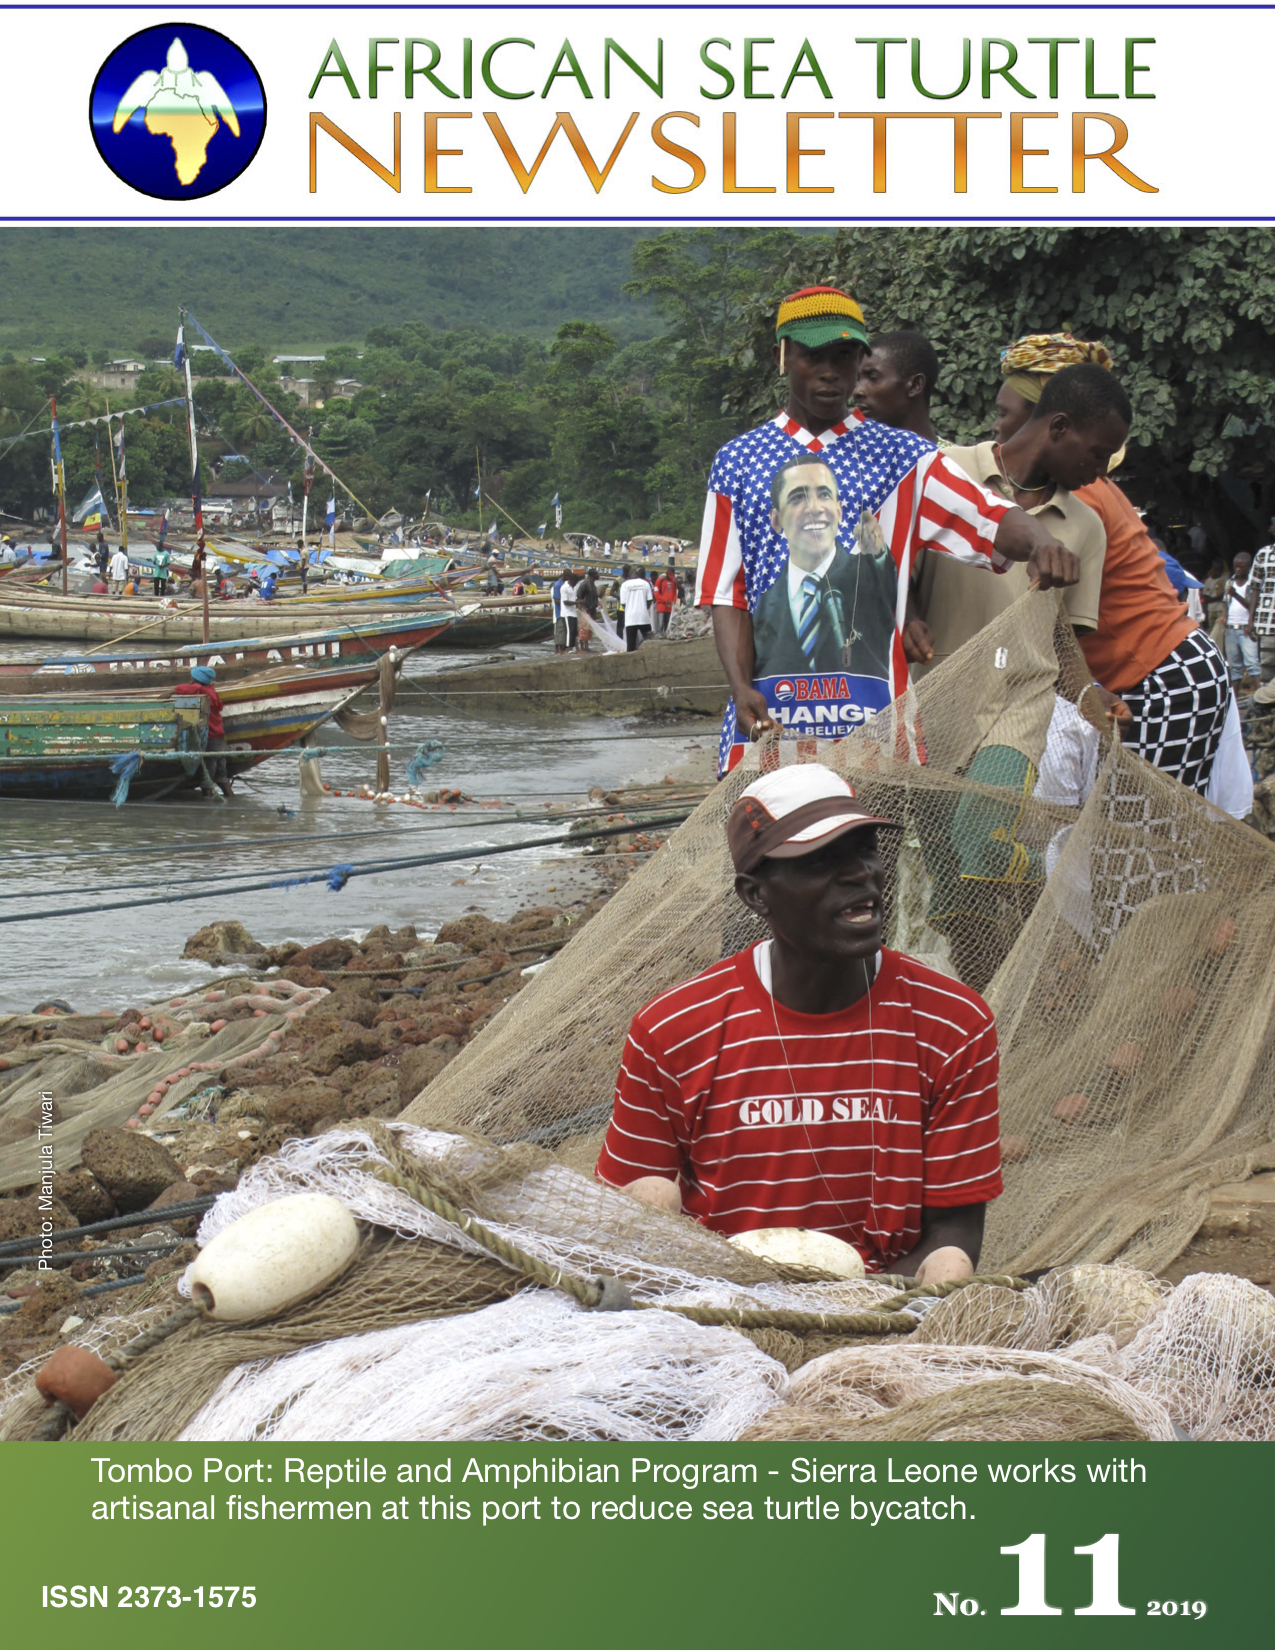 African Sea Turtle Newsletter #11_cover.jpg